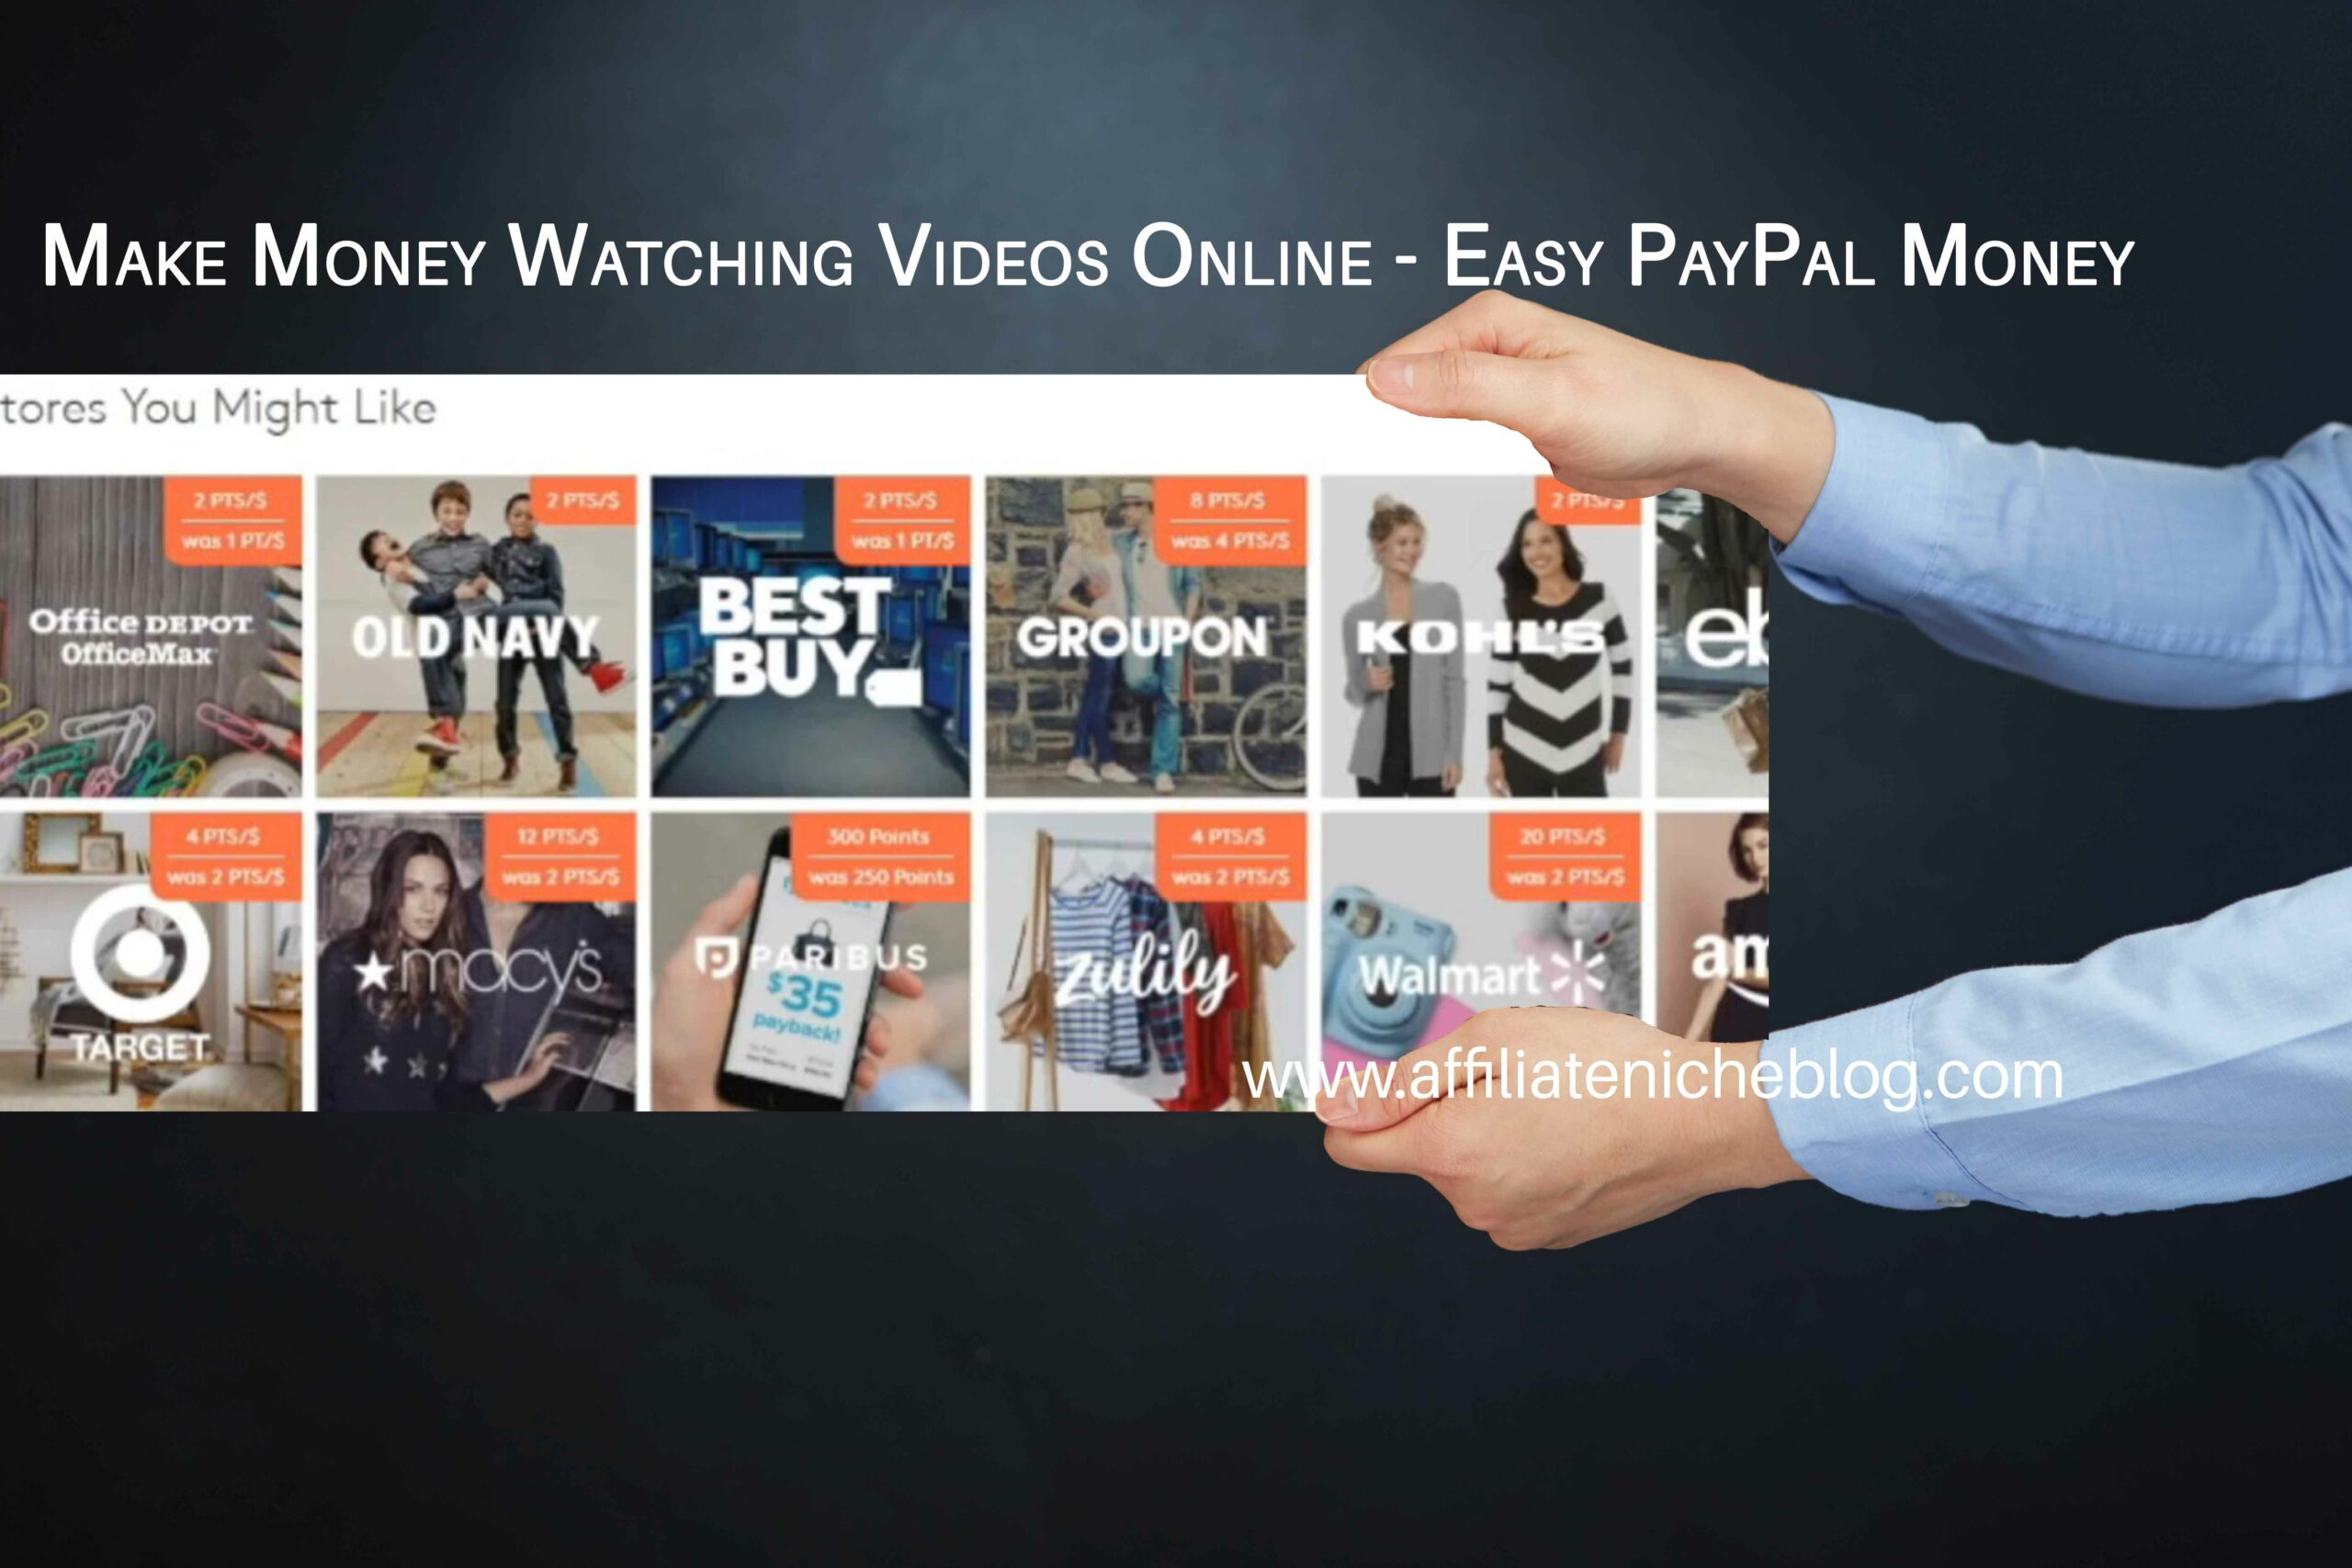 Make Money Watching Videos Online - Easy PayPal Money